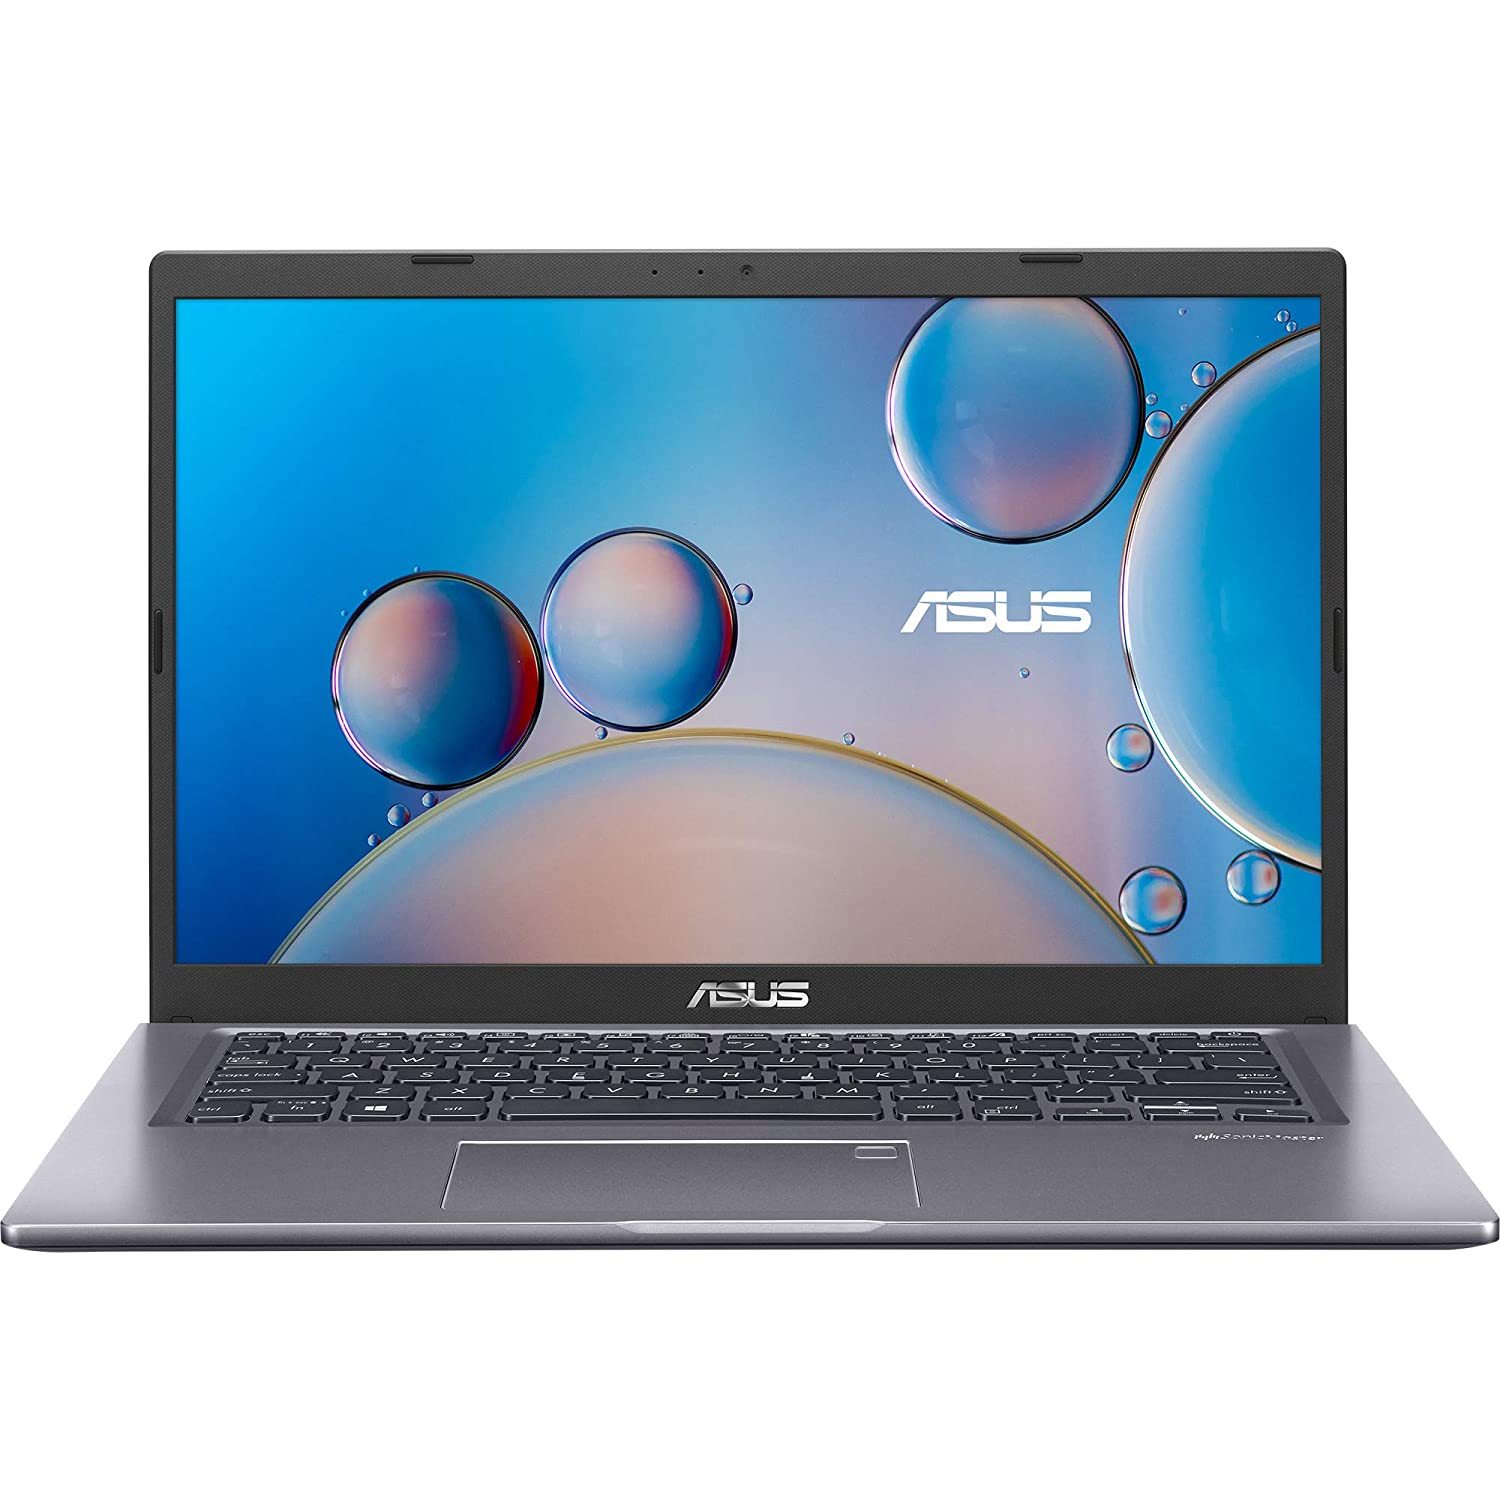 Asus Vivobook 14 long battery life laptop to buy under 40000